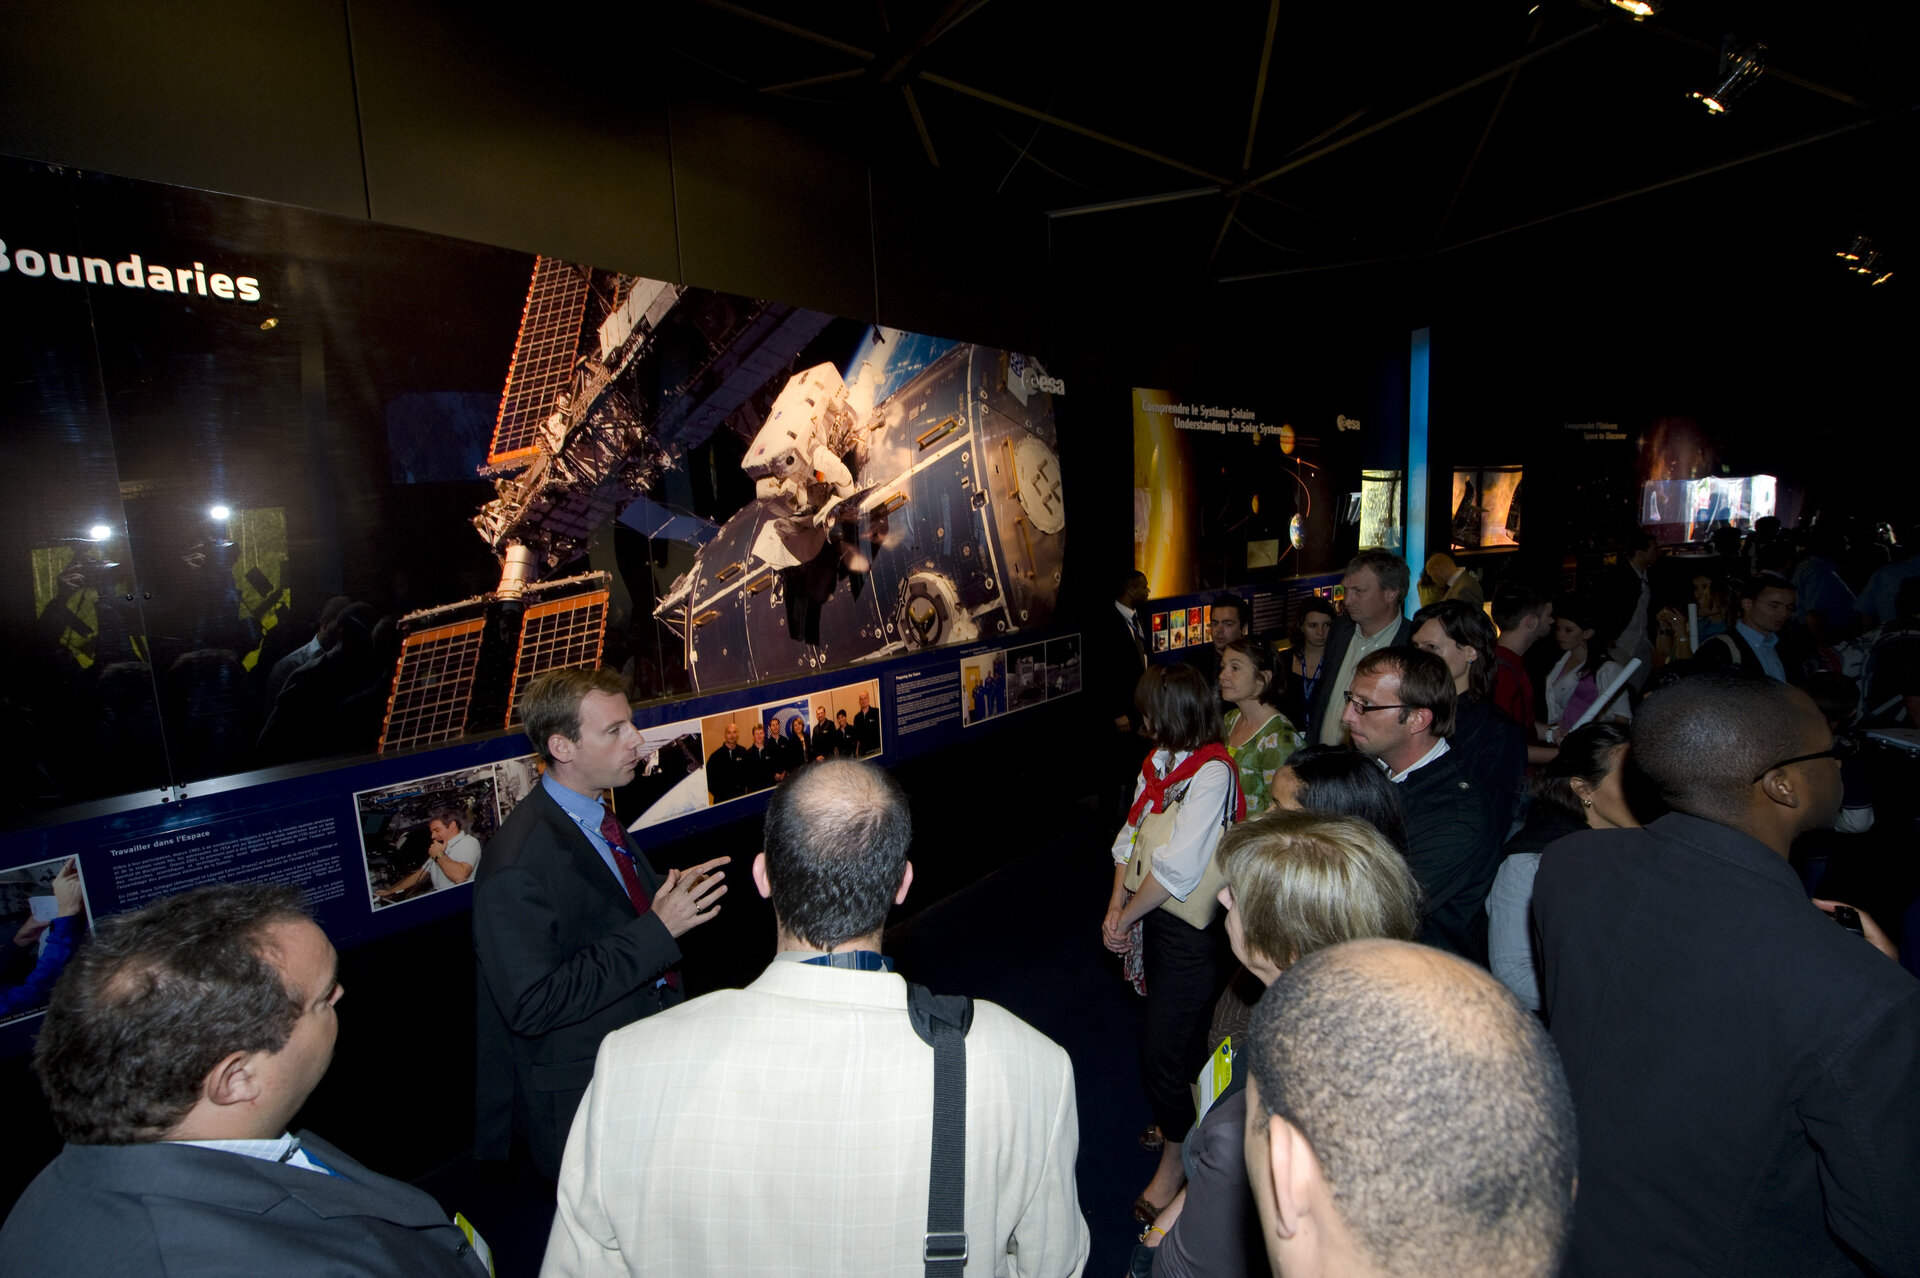 ESA staff receive a guided tour of the ESA Pavilion at Le Bourget